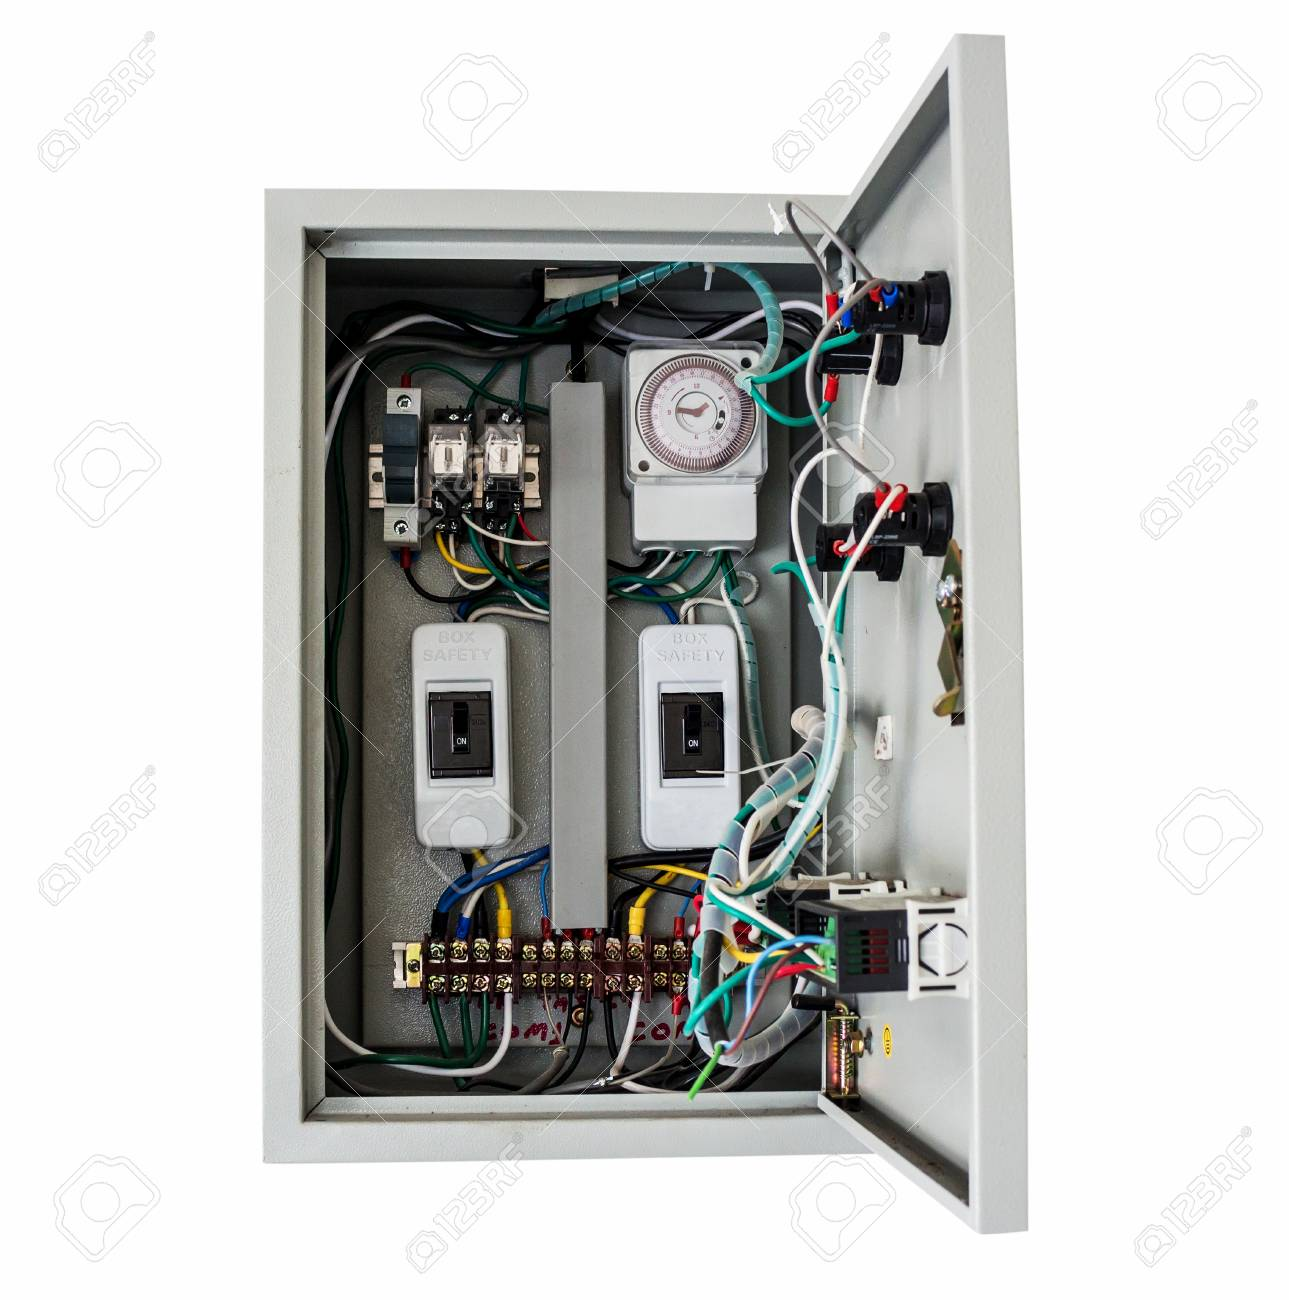 Electrical Control Box On Isolated White With Clipping Path. Stock ...